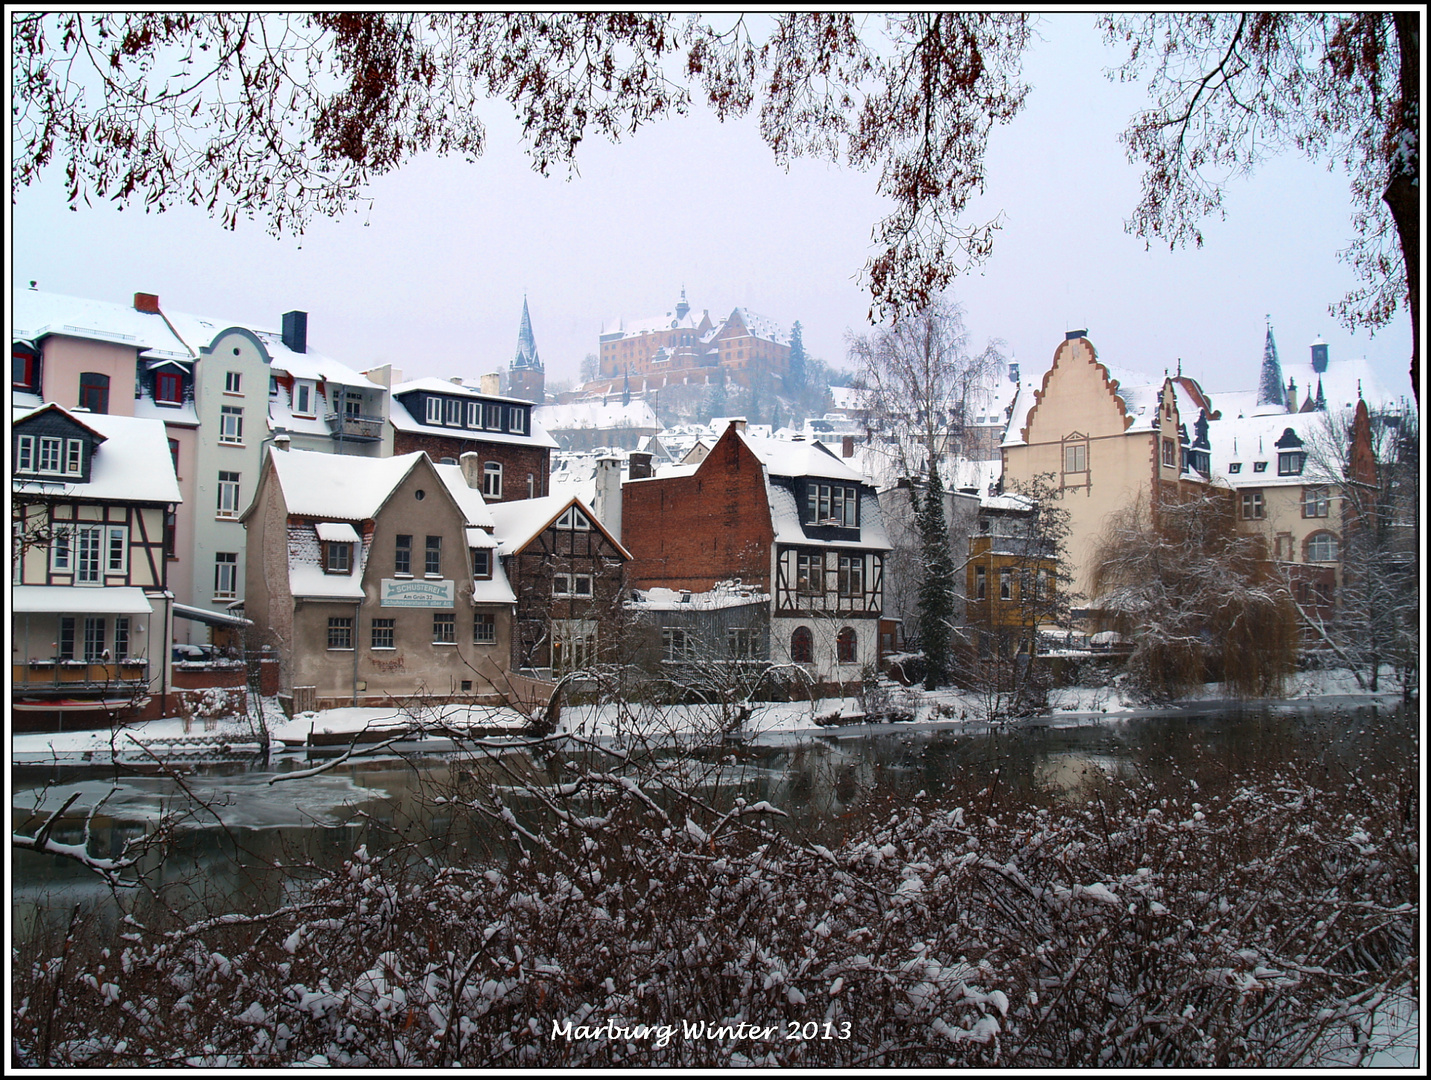 Winter in Marburg 2013  (1)